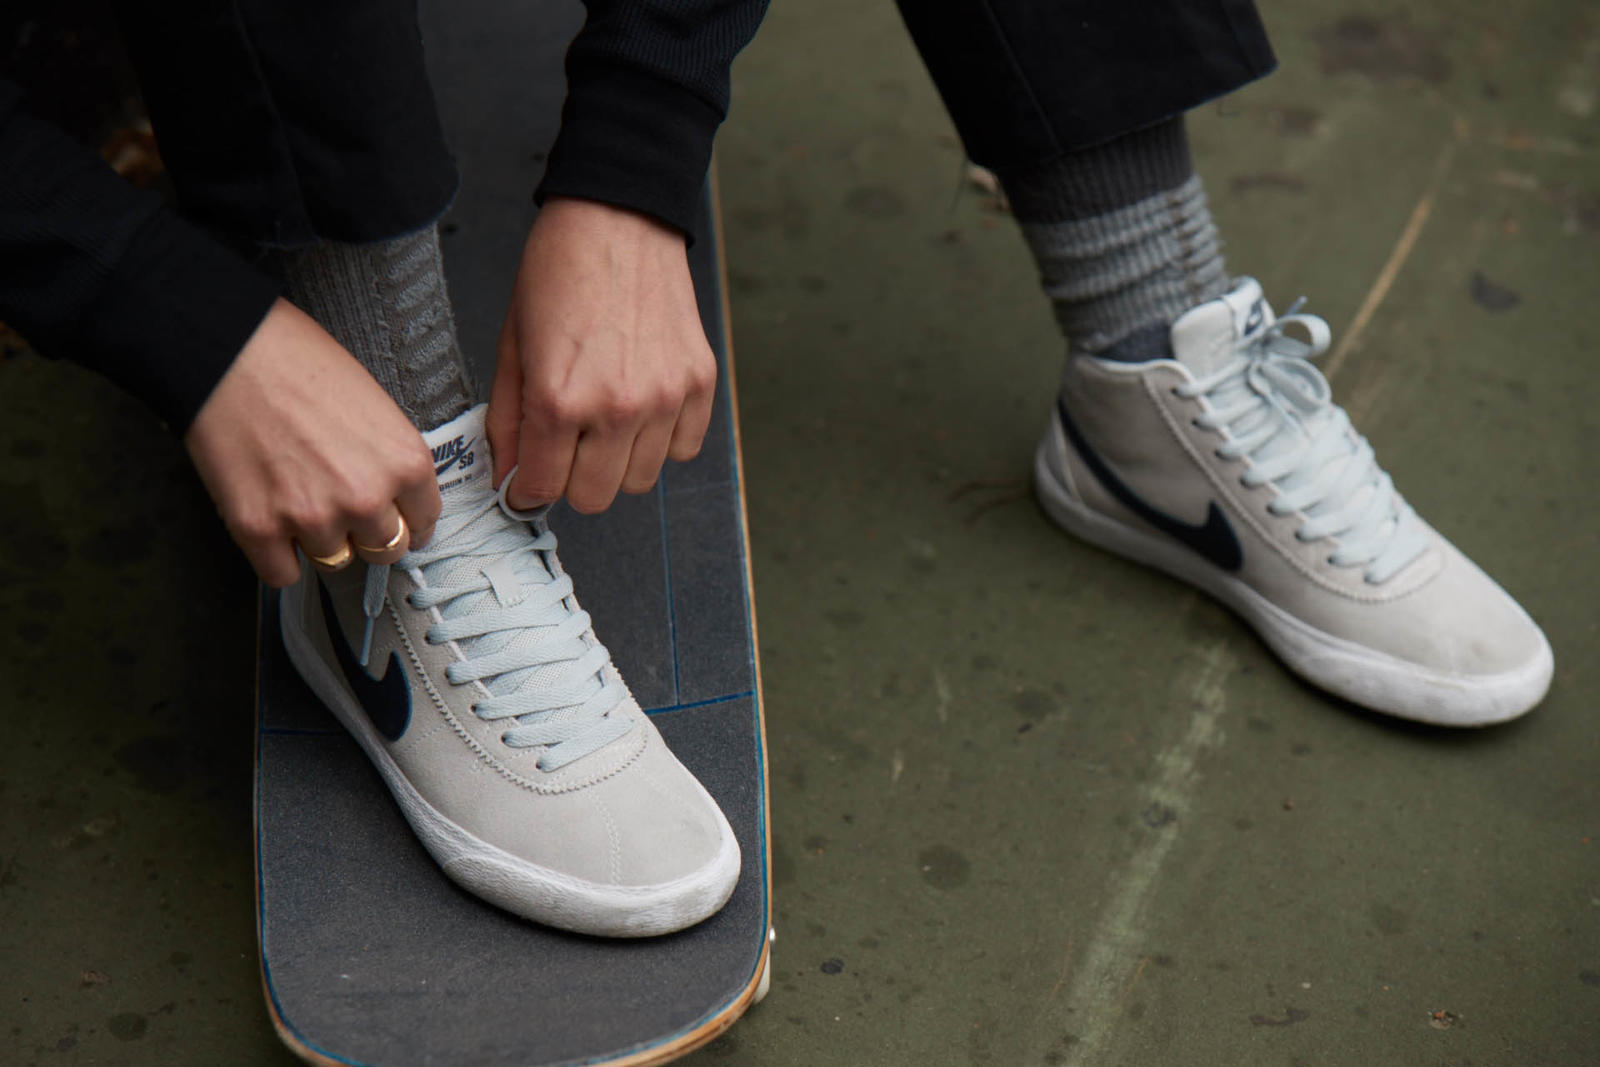 for whole family free delivery no sale tax The First Nike Skate Shoe Designed For Women - Nike News